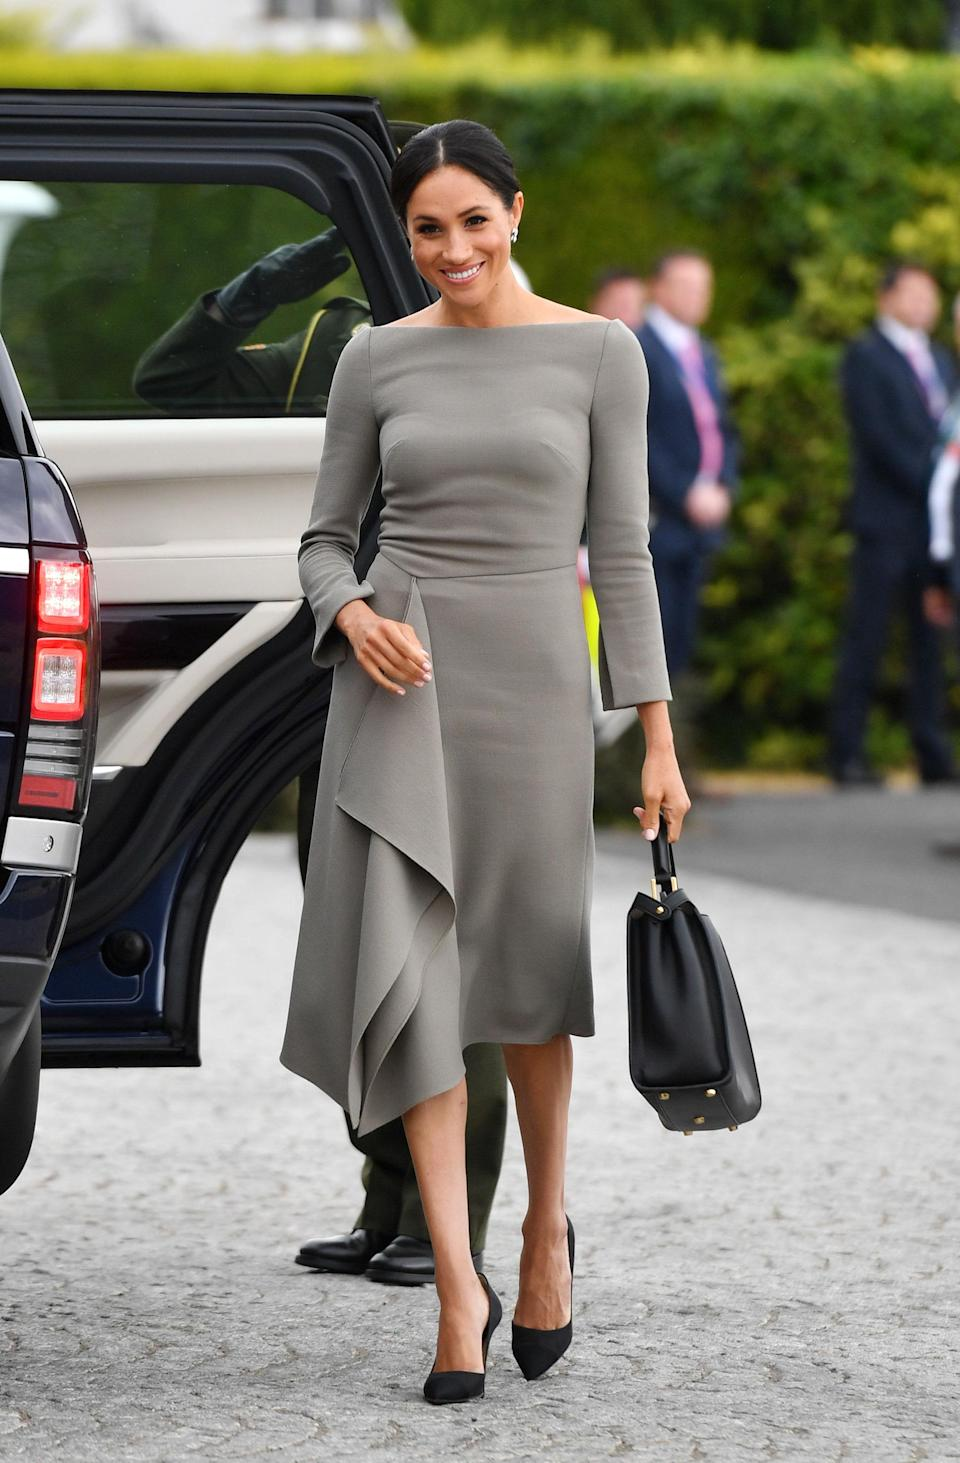 Outfit 4: A fitted, Roland Mouret dress was Meghan's first outfit on the second day of the Dublin tour [Photo: PA]